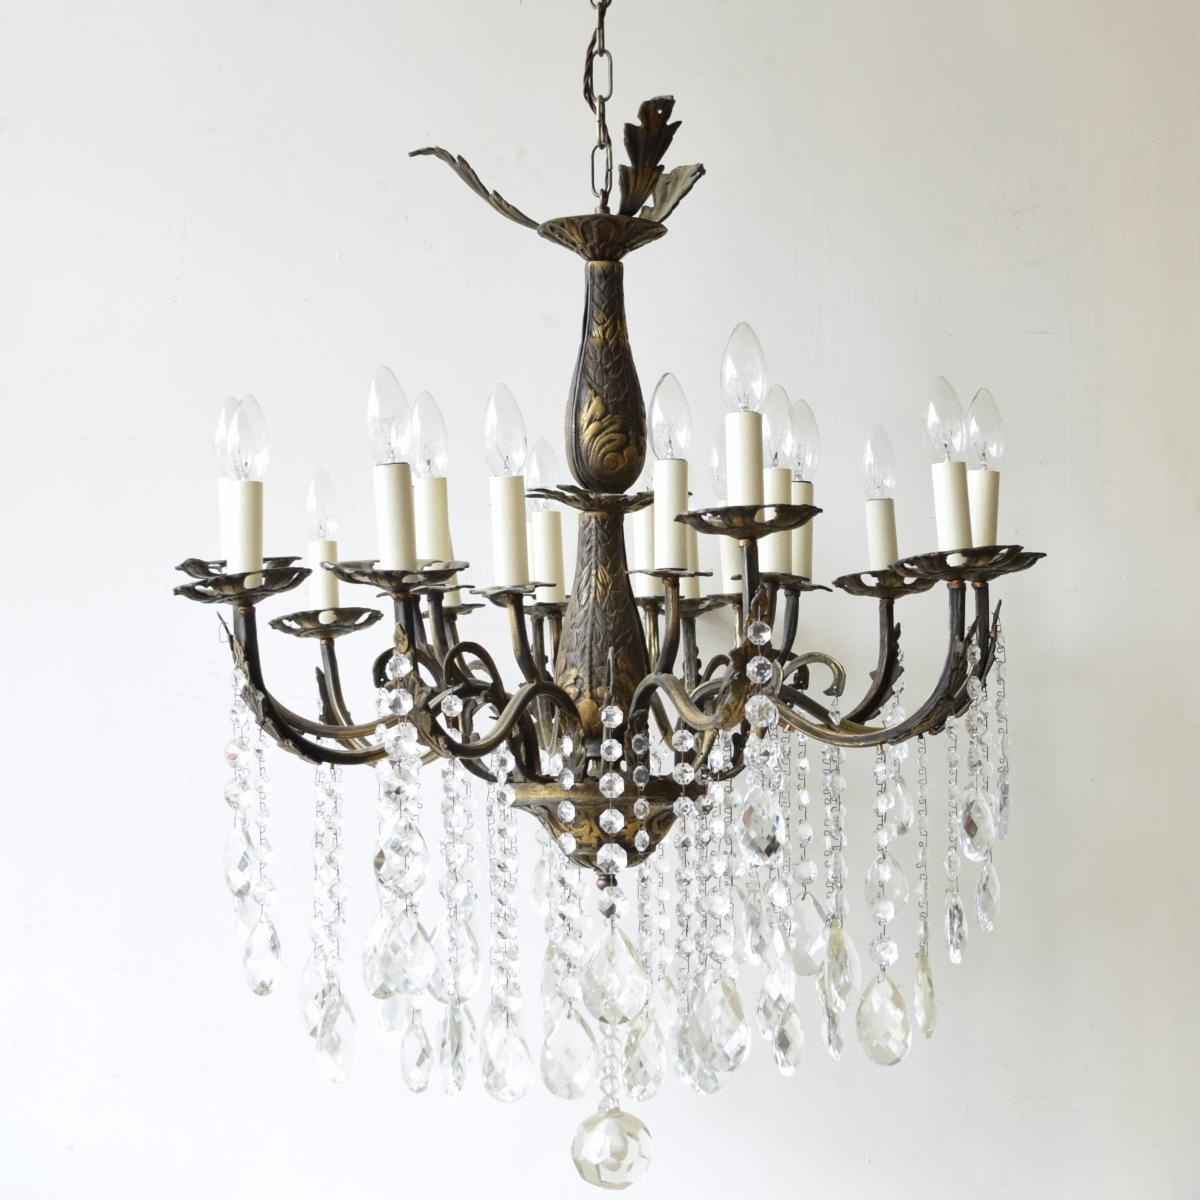 Fashionable Large Vintage French 16 Light Brass Chandelier For Sale At Pamono In Large Brass Chandelier (View 5 of 15)